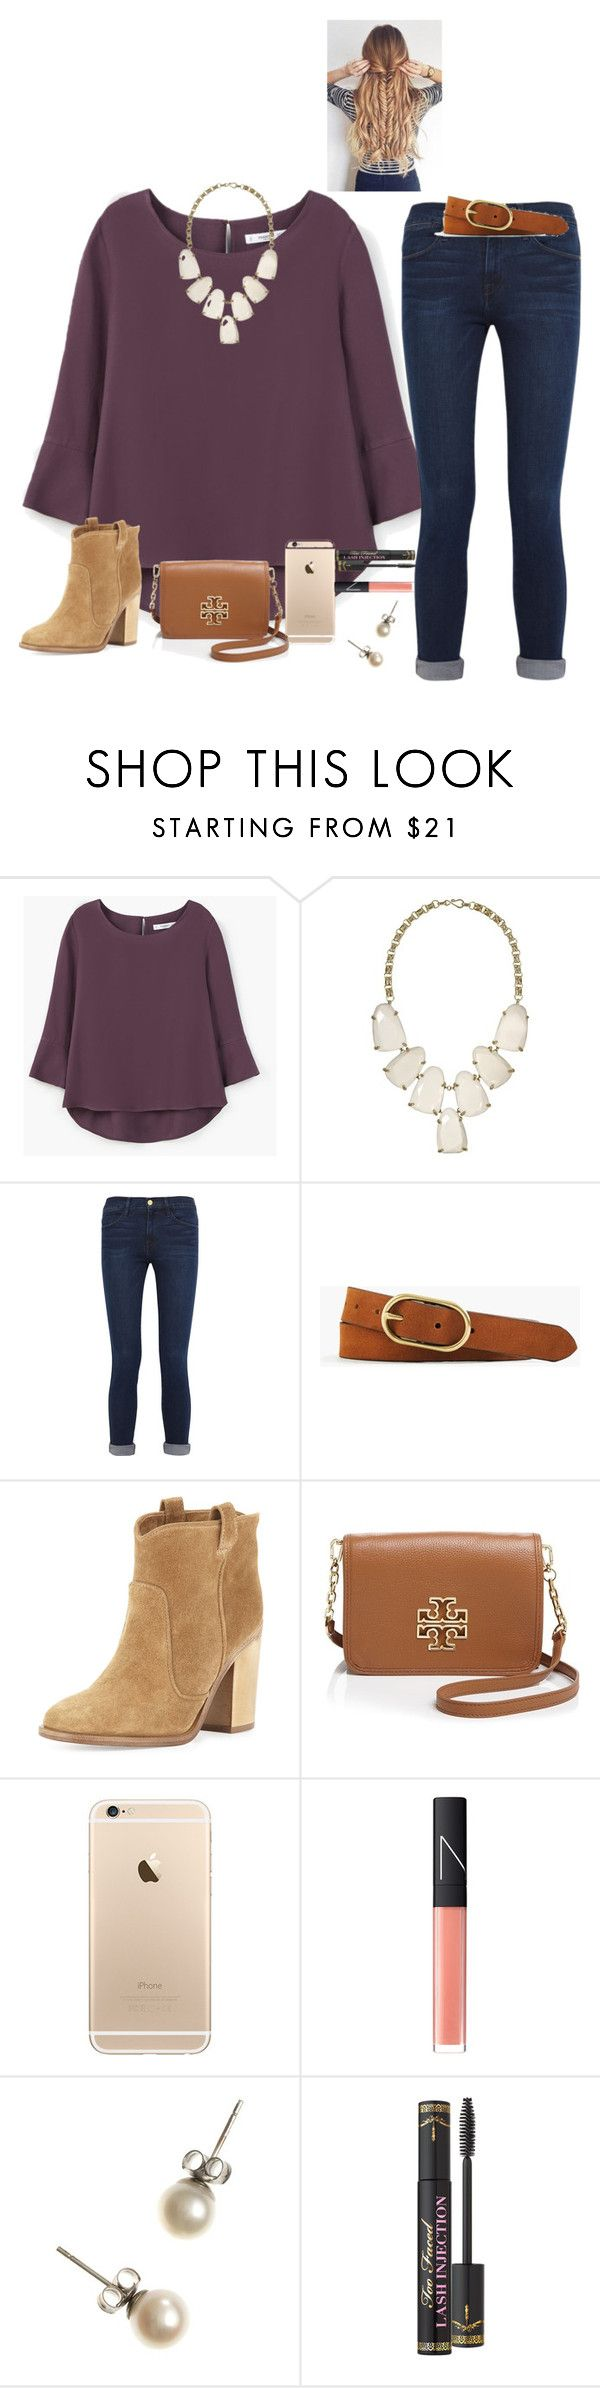 """""""Cutouts and text isn't working on poly. Anyone else?"""" by raquate1232 ❤ liked on Polyvore featuring MANGO, Kendra Scott, Frame, J.Crew, Laurence Dacade, Tory Burch, NARS Cosmetics and Too Faced Cosmetics"""